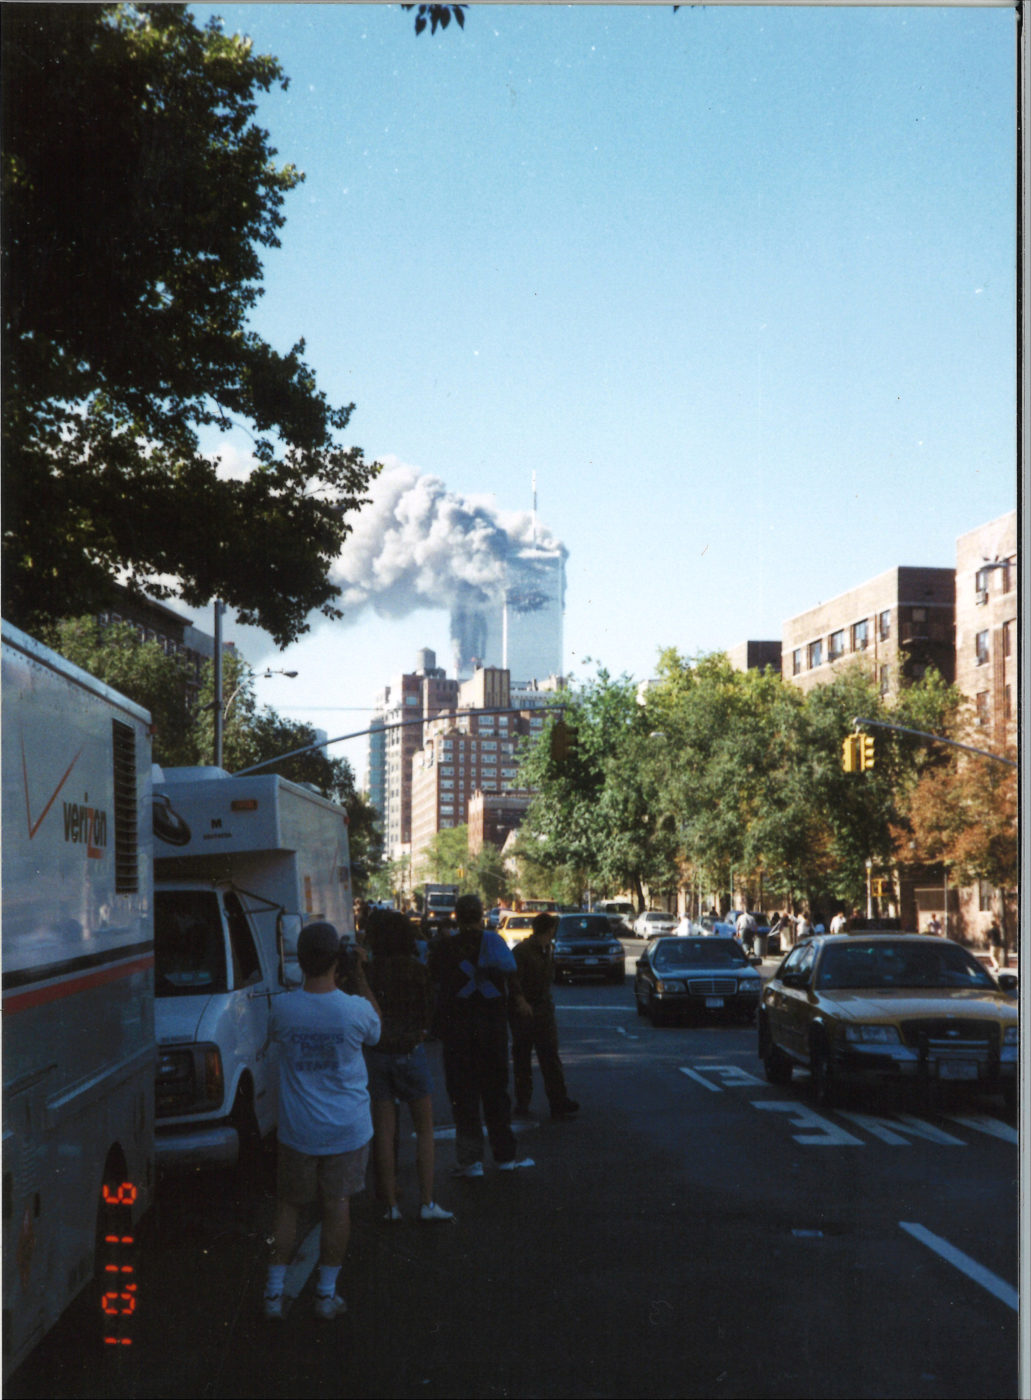 New Yorkers Stand Alongside Traffic Watching the Towers on Fire Looking South From Bleecker Street and 6th Avenue vertical view.jpg